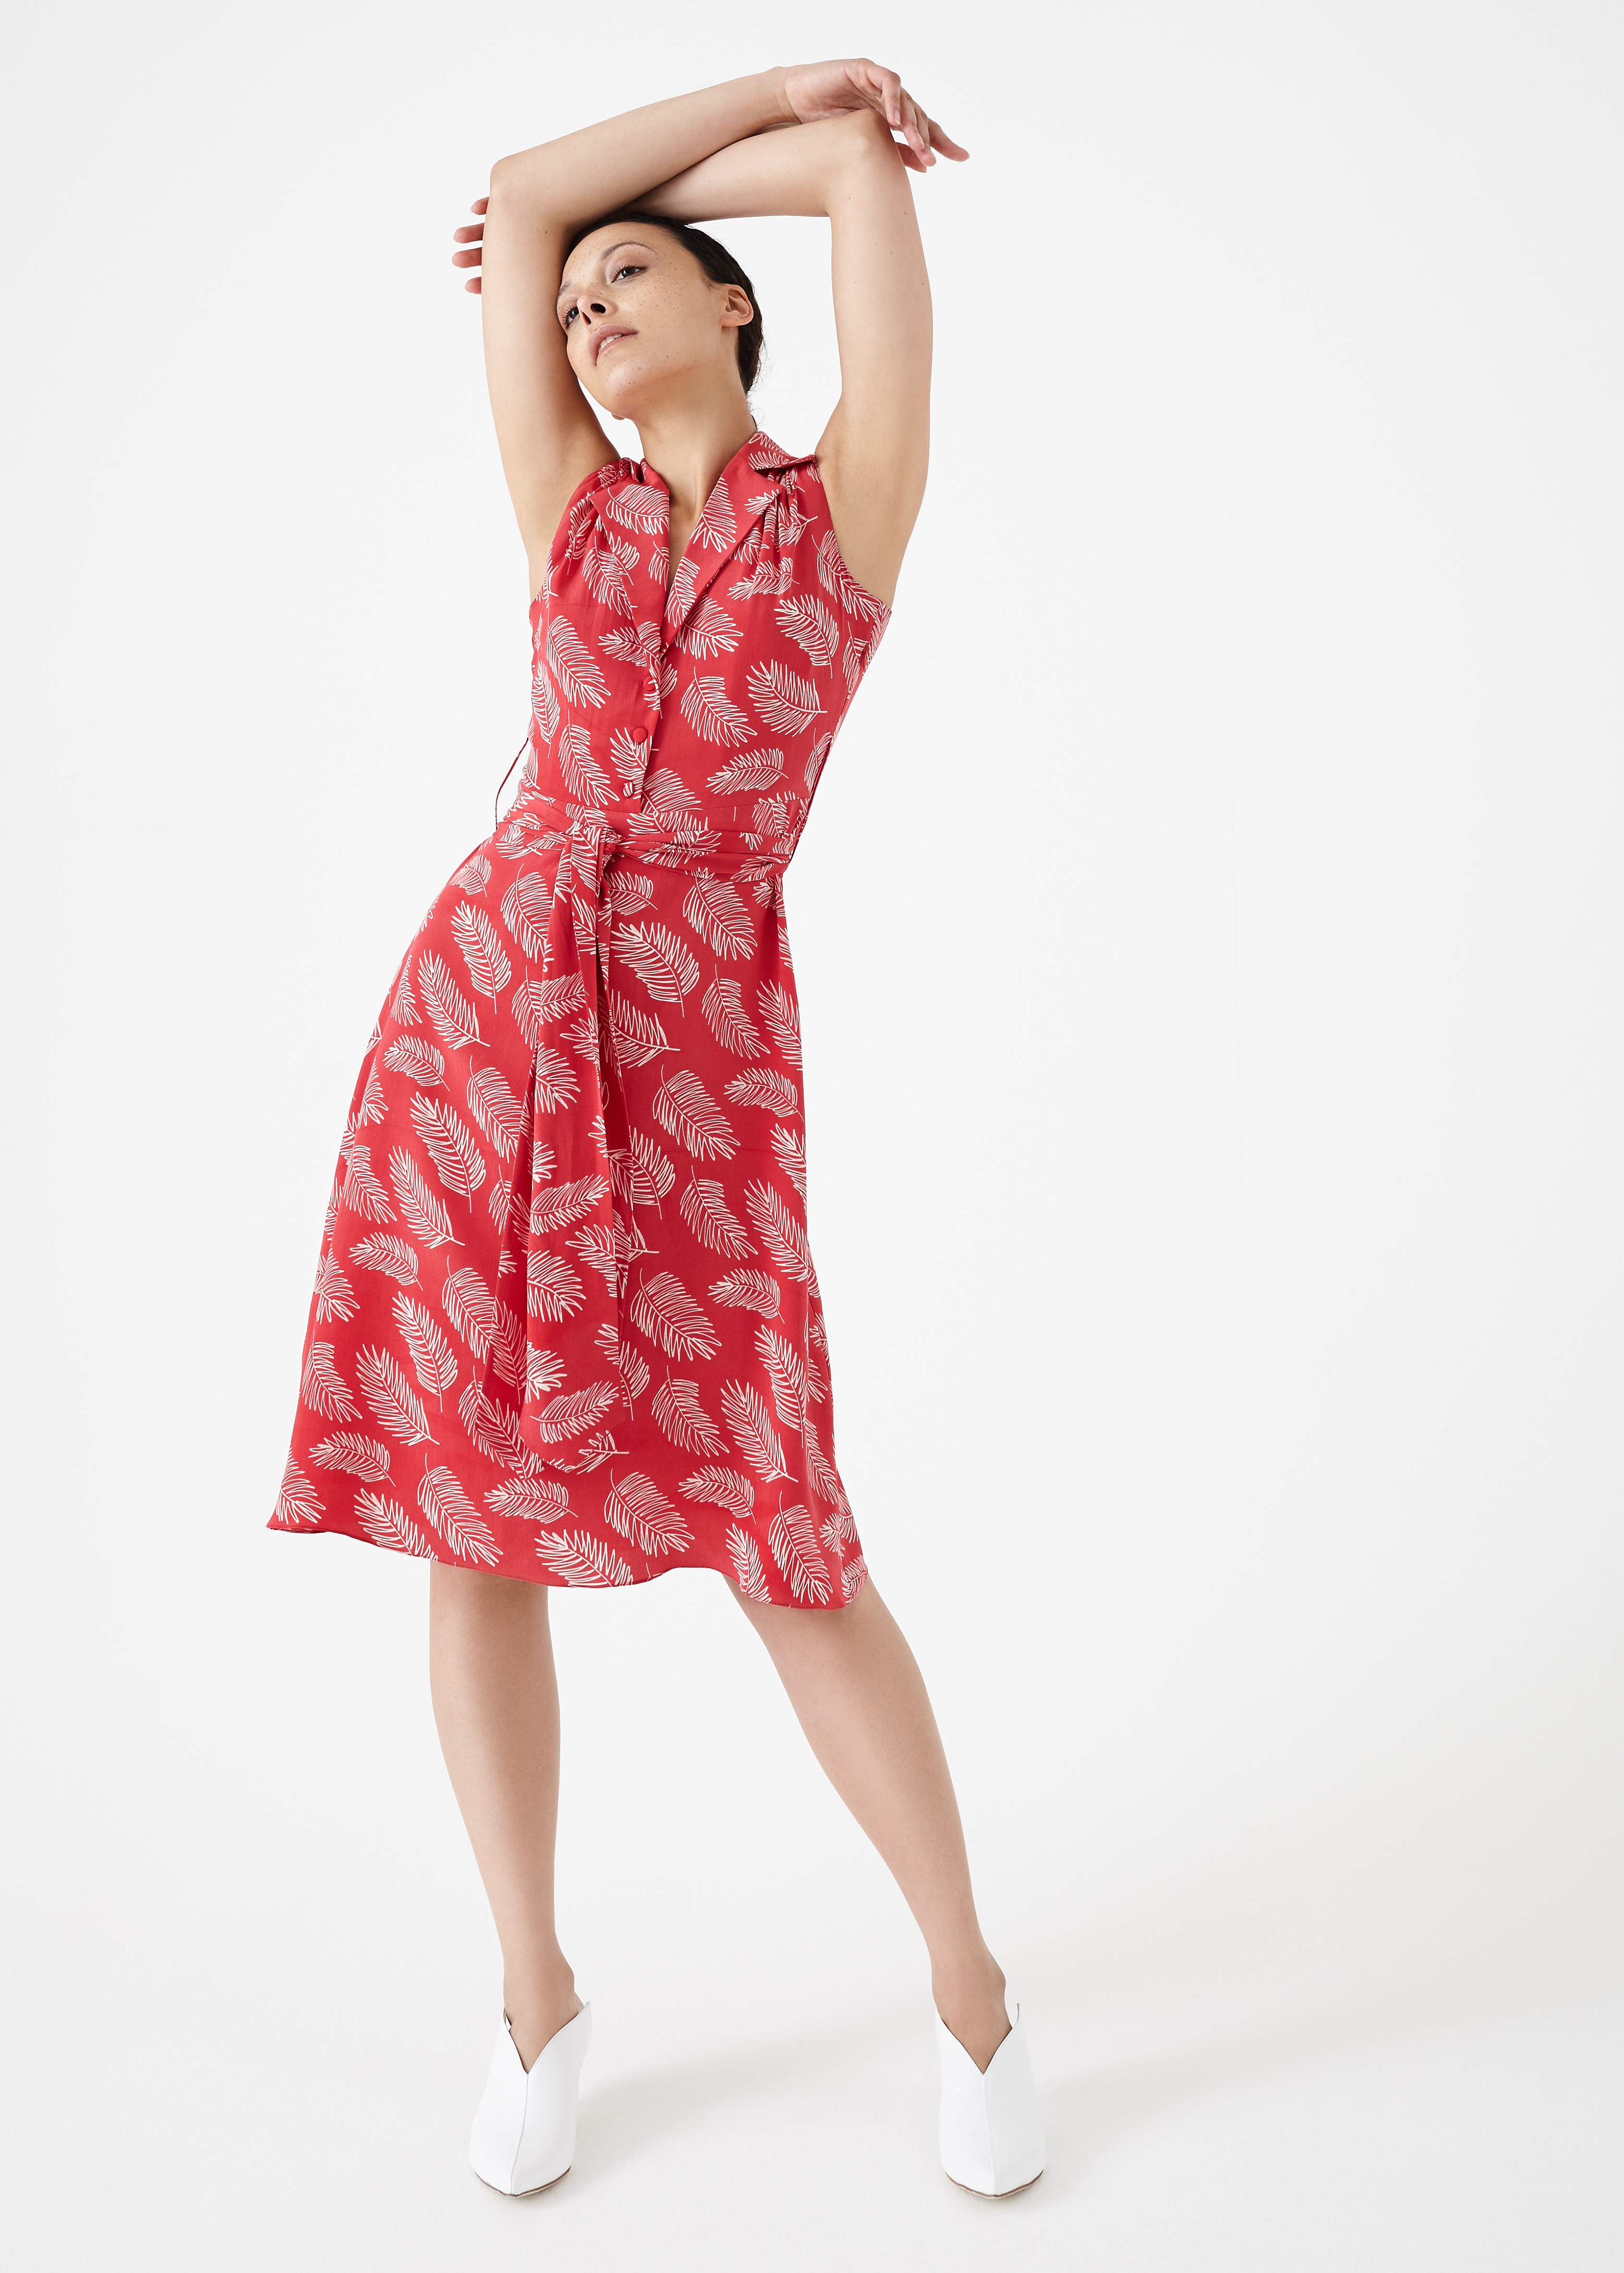 Setae Too Dress by Bozena Jankowska on curated-crowd.com